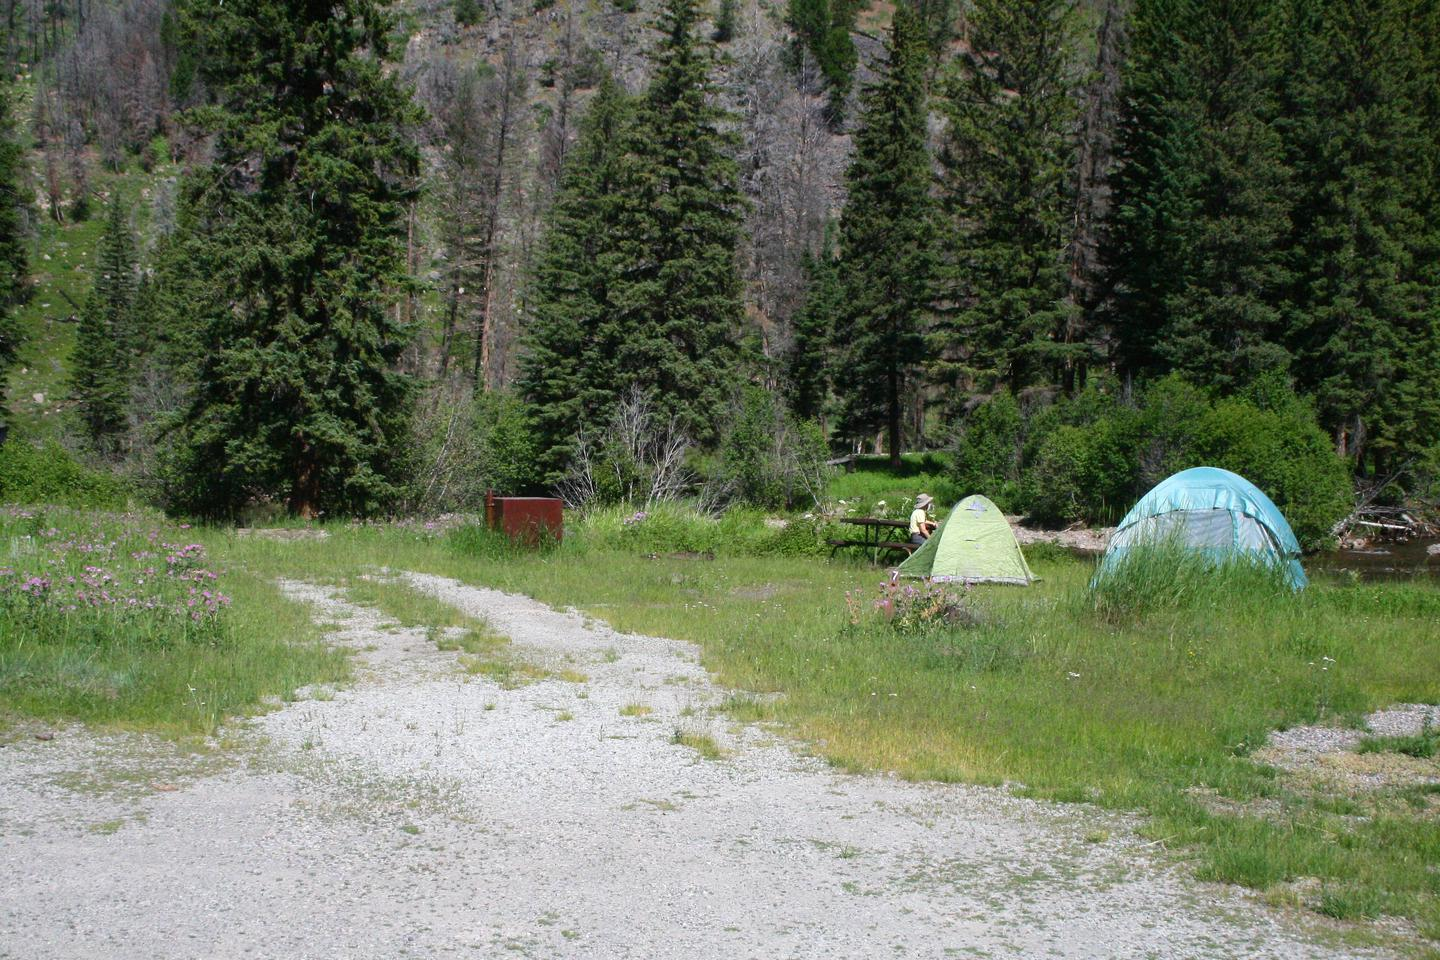 Slough Creek Campground site #7